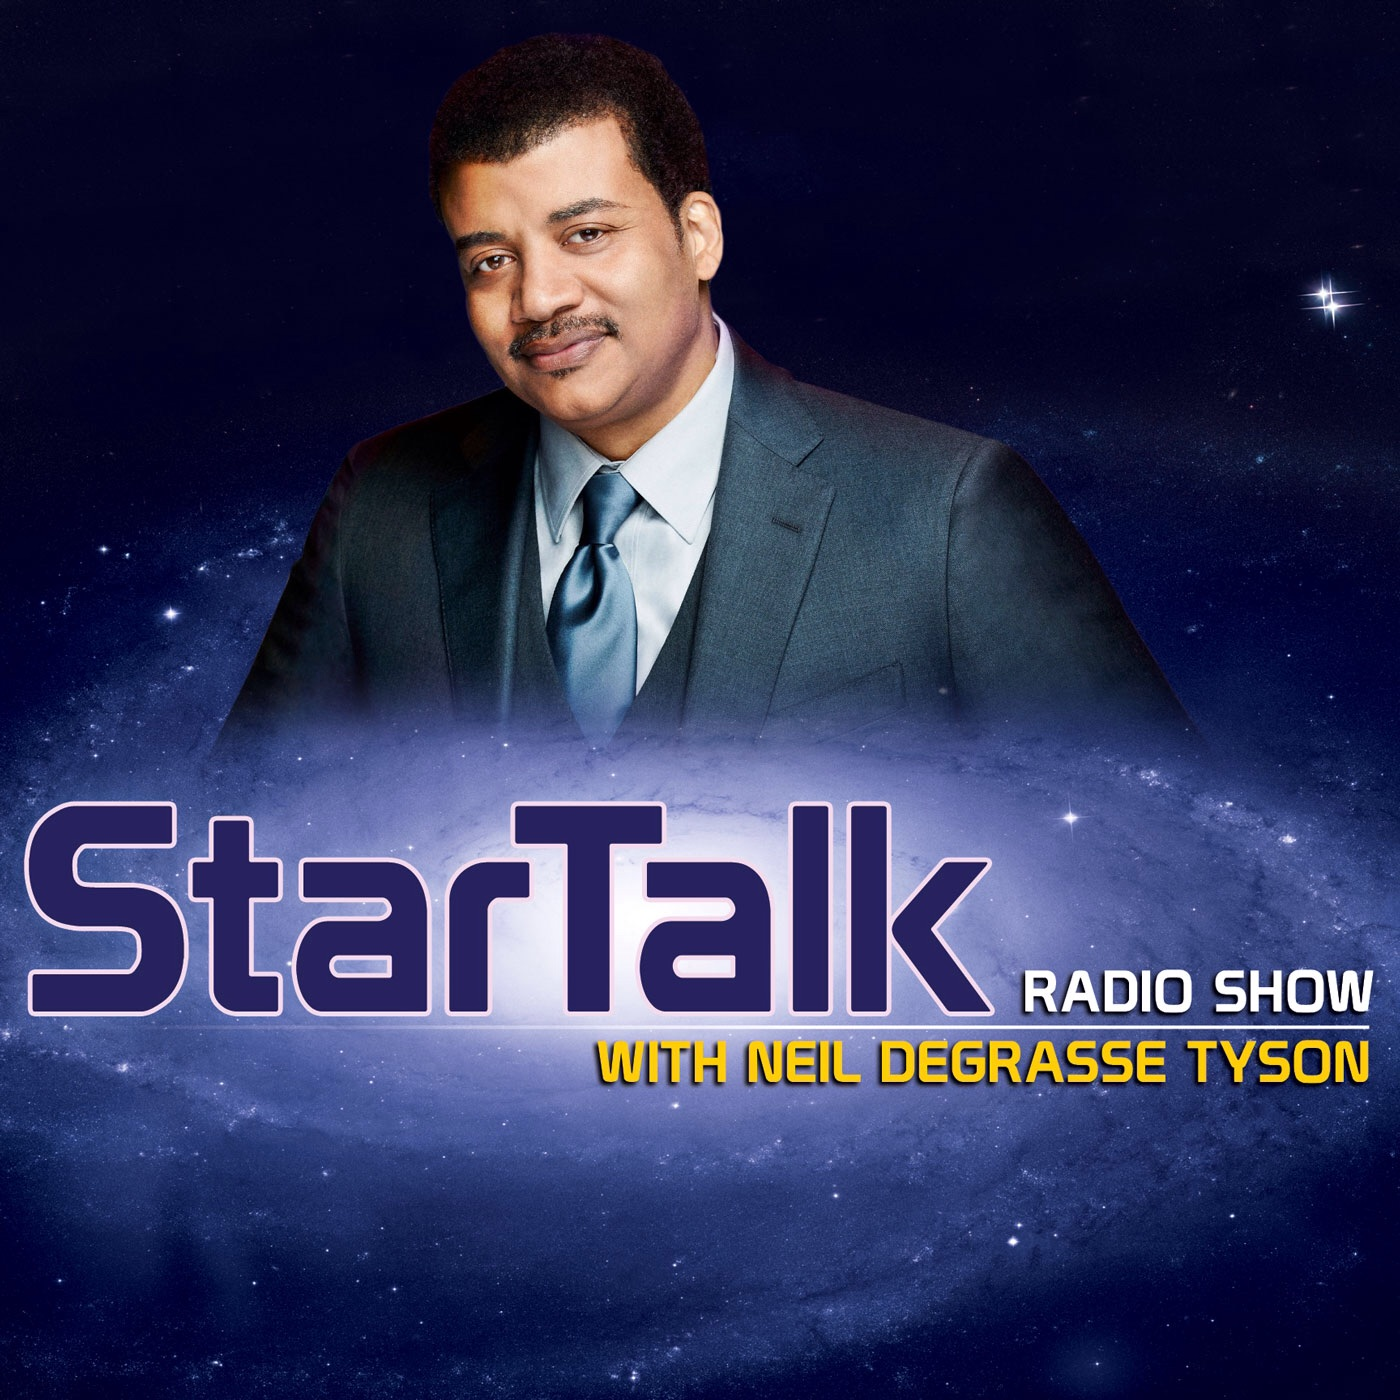 podcasts-we-love-guide-startalk-radio